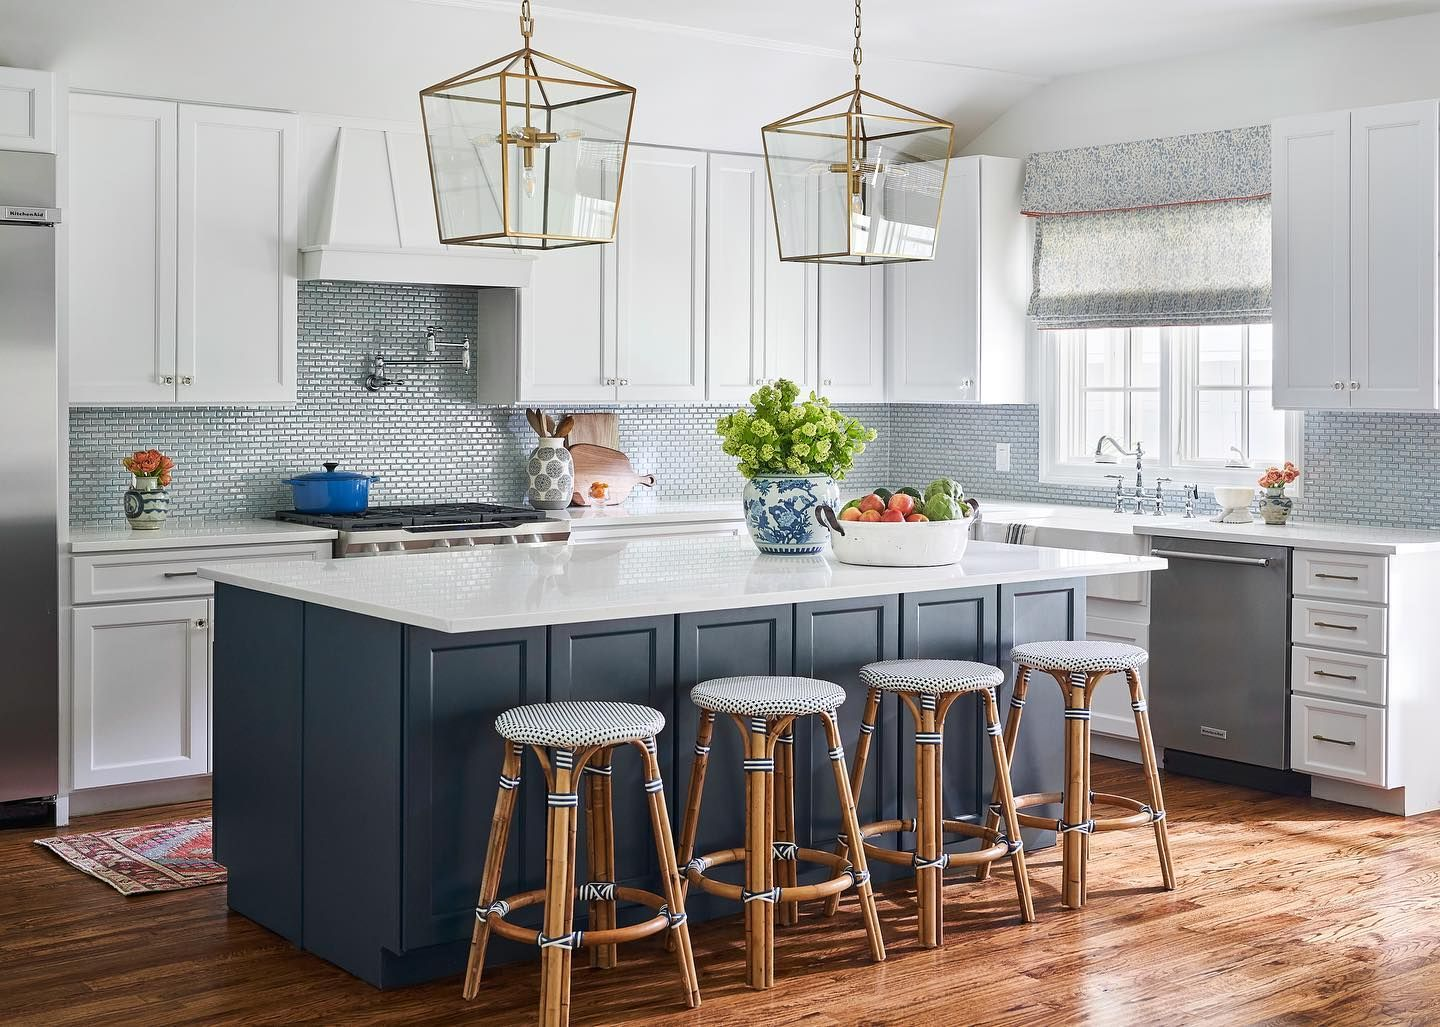 Riviera Backless Counter Stool In 2020 Counter Stools Backless Parisian Bistro Chairs Dark Blue Kitchens